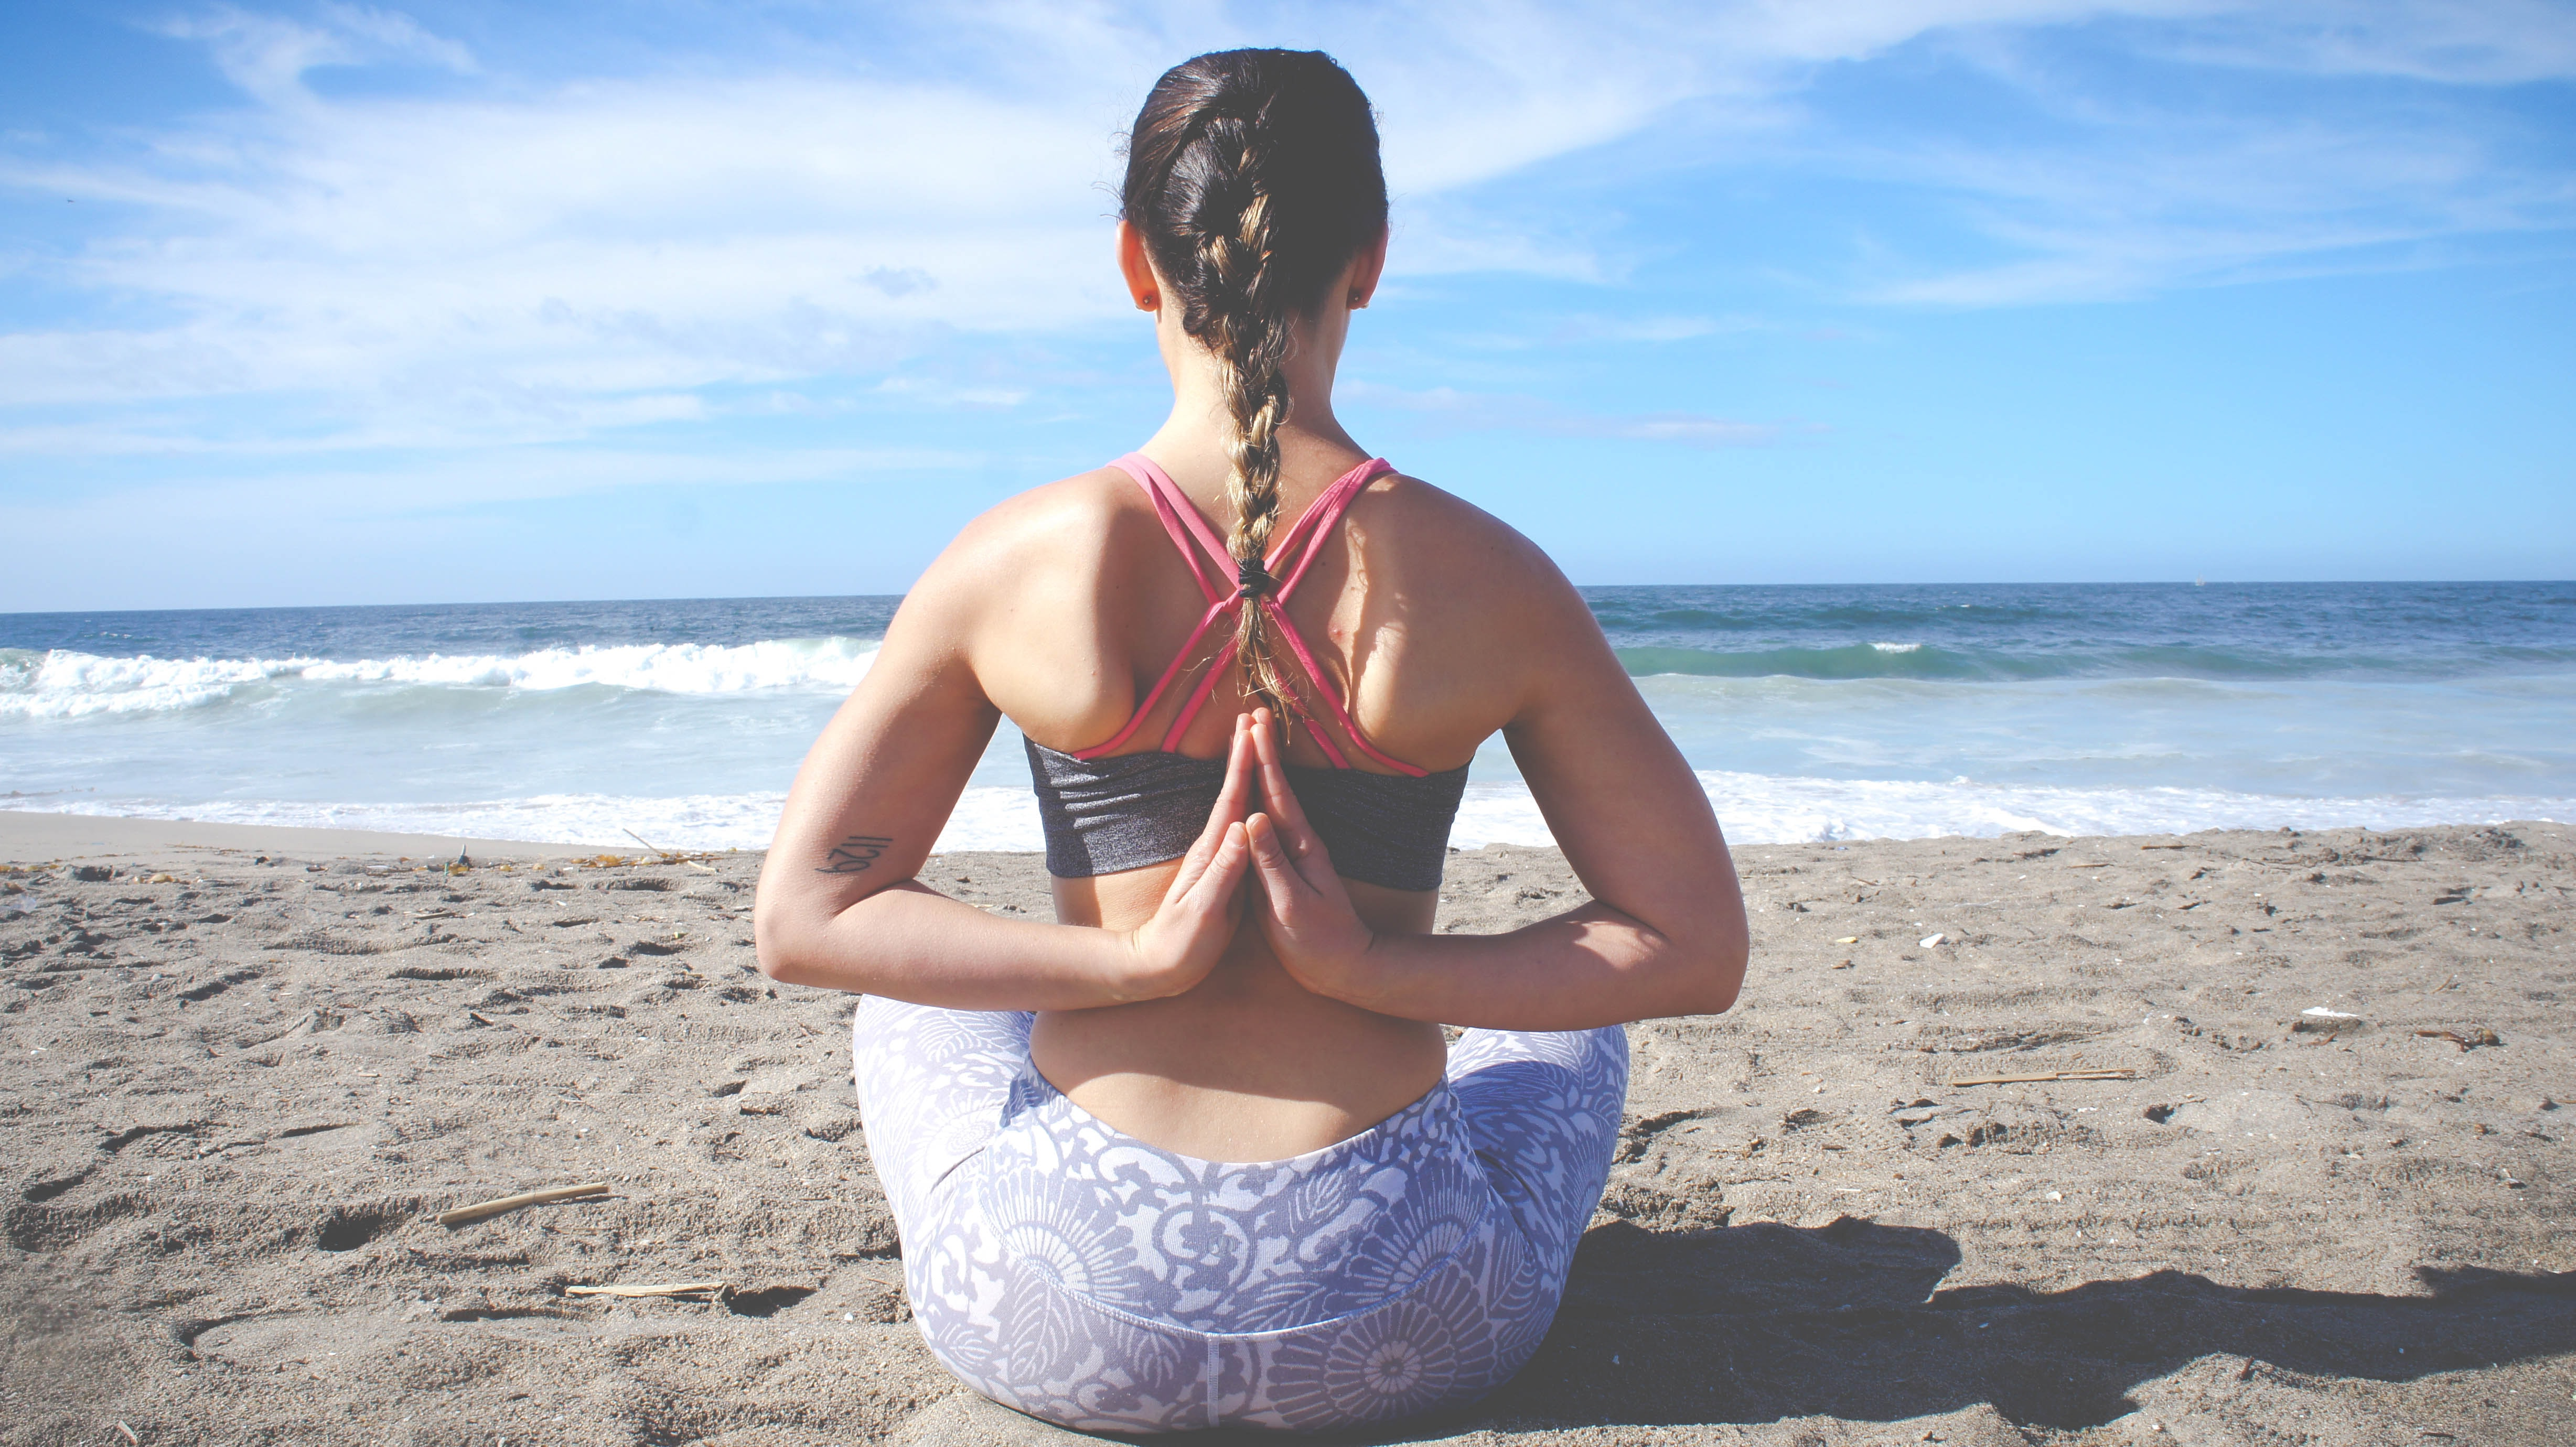 A woman meditating at the beach with her hands behind her back.